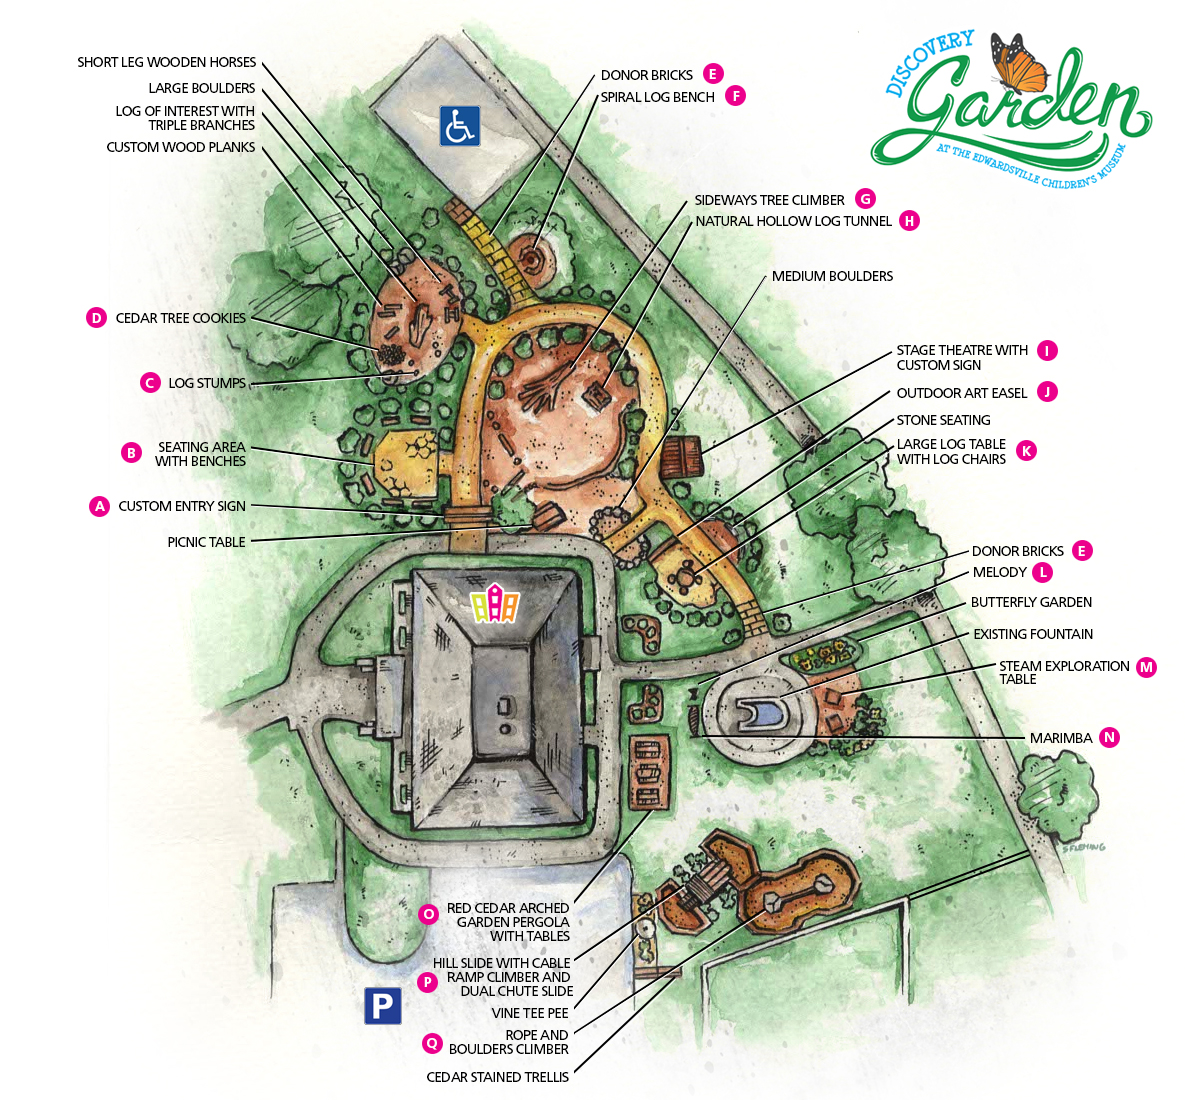 Discovery Garden layout